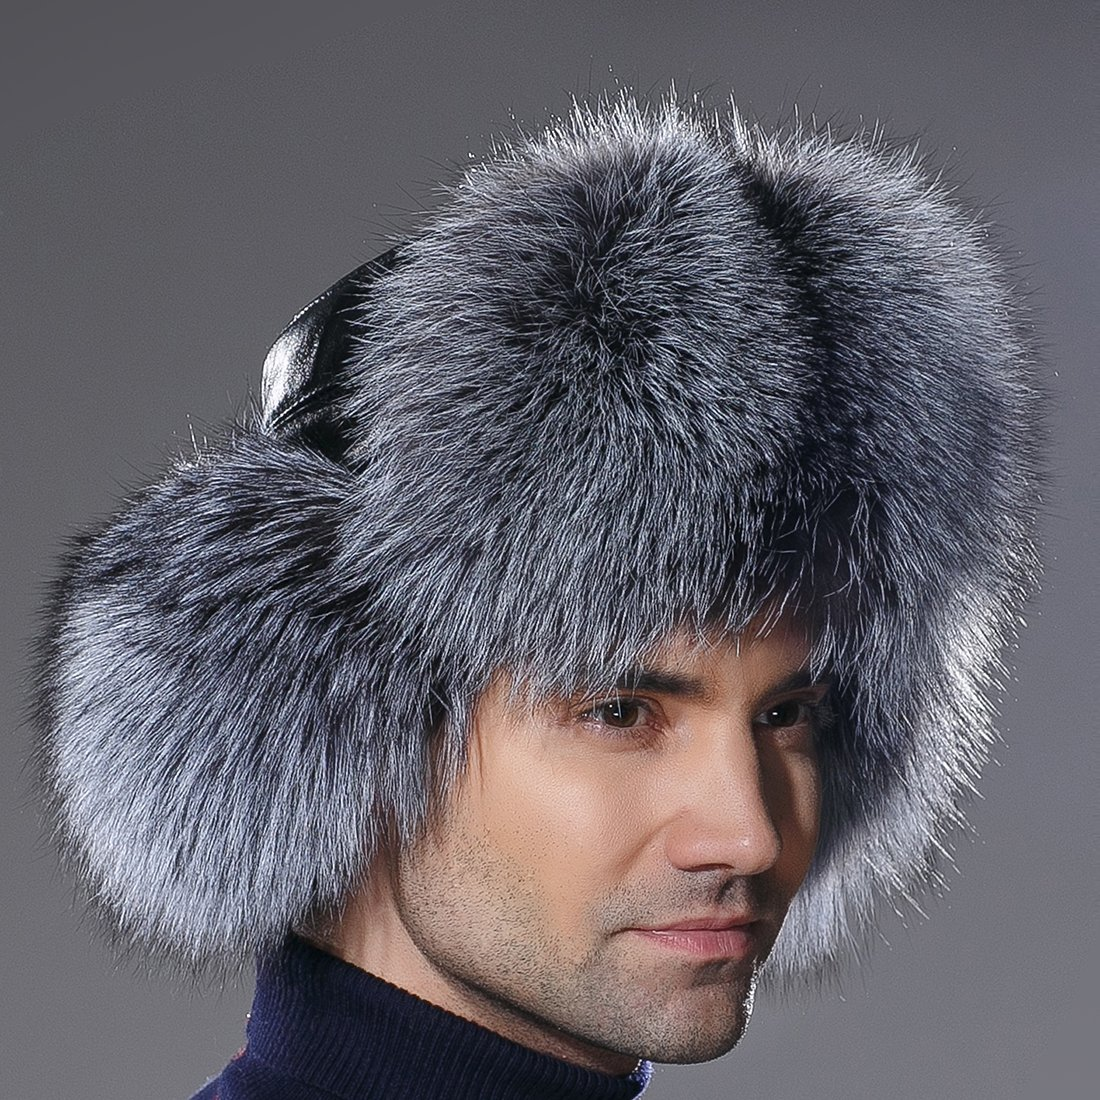 URSFUR Winter Russian Fur Hat Mens Real Silver Fox Fur Ushanka Trapper Cap by URSFUR (Image #4)